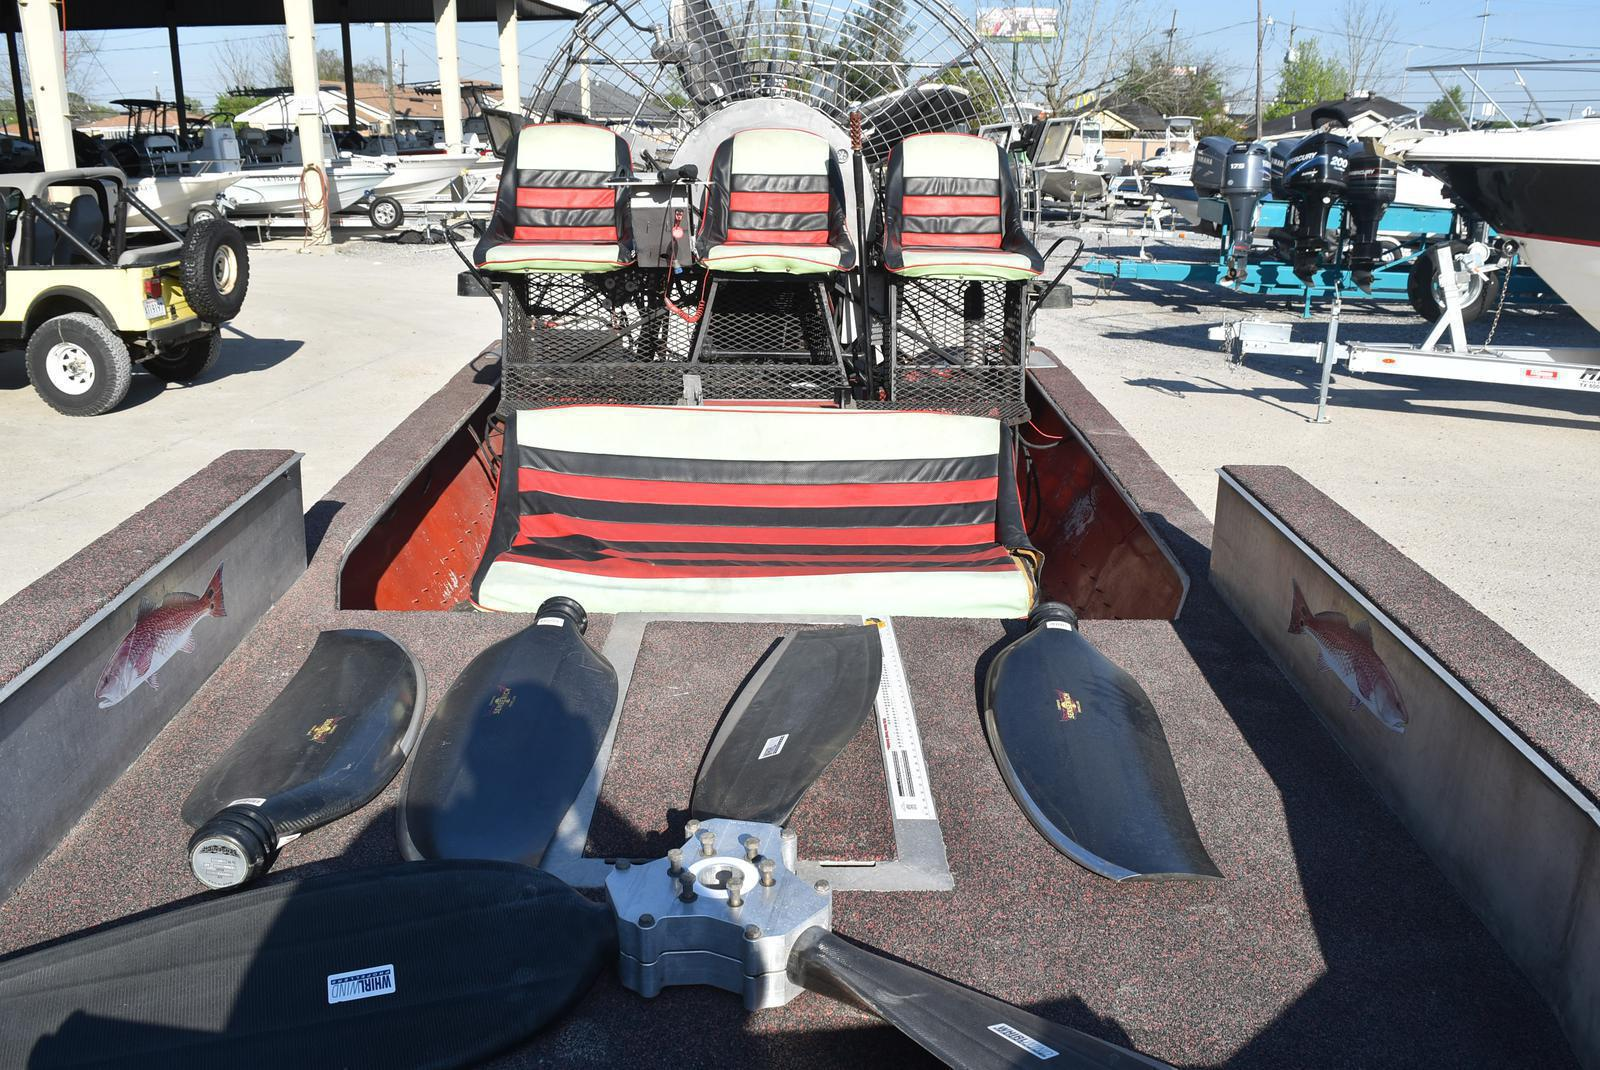 2016 Diamondback boat for sale, model of the boat is Trailboss 20 & Image # 3 of 35